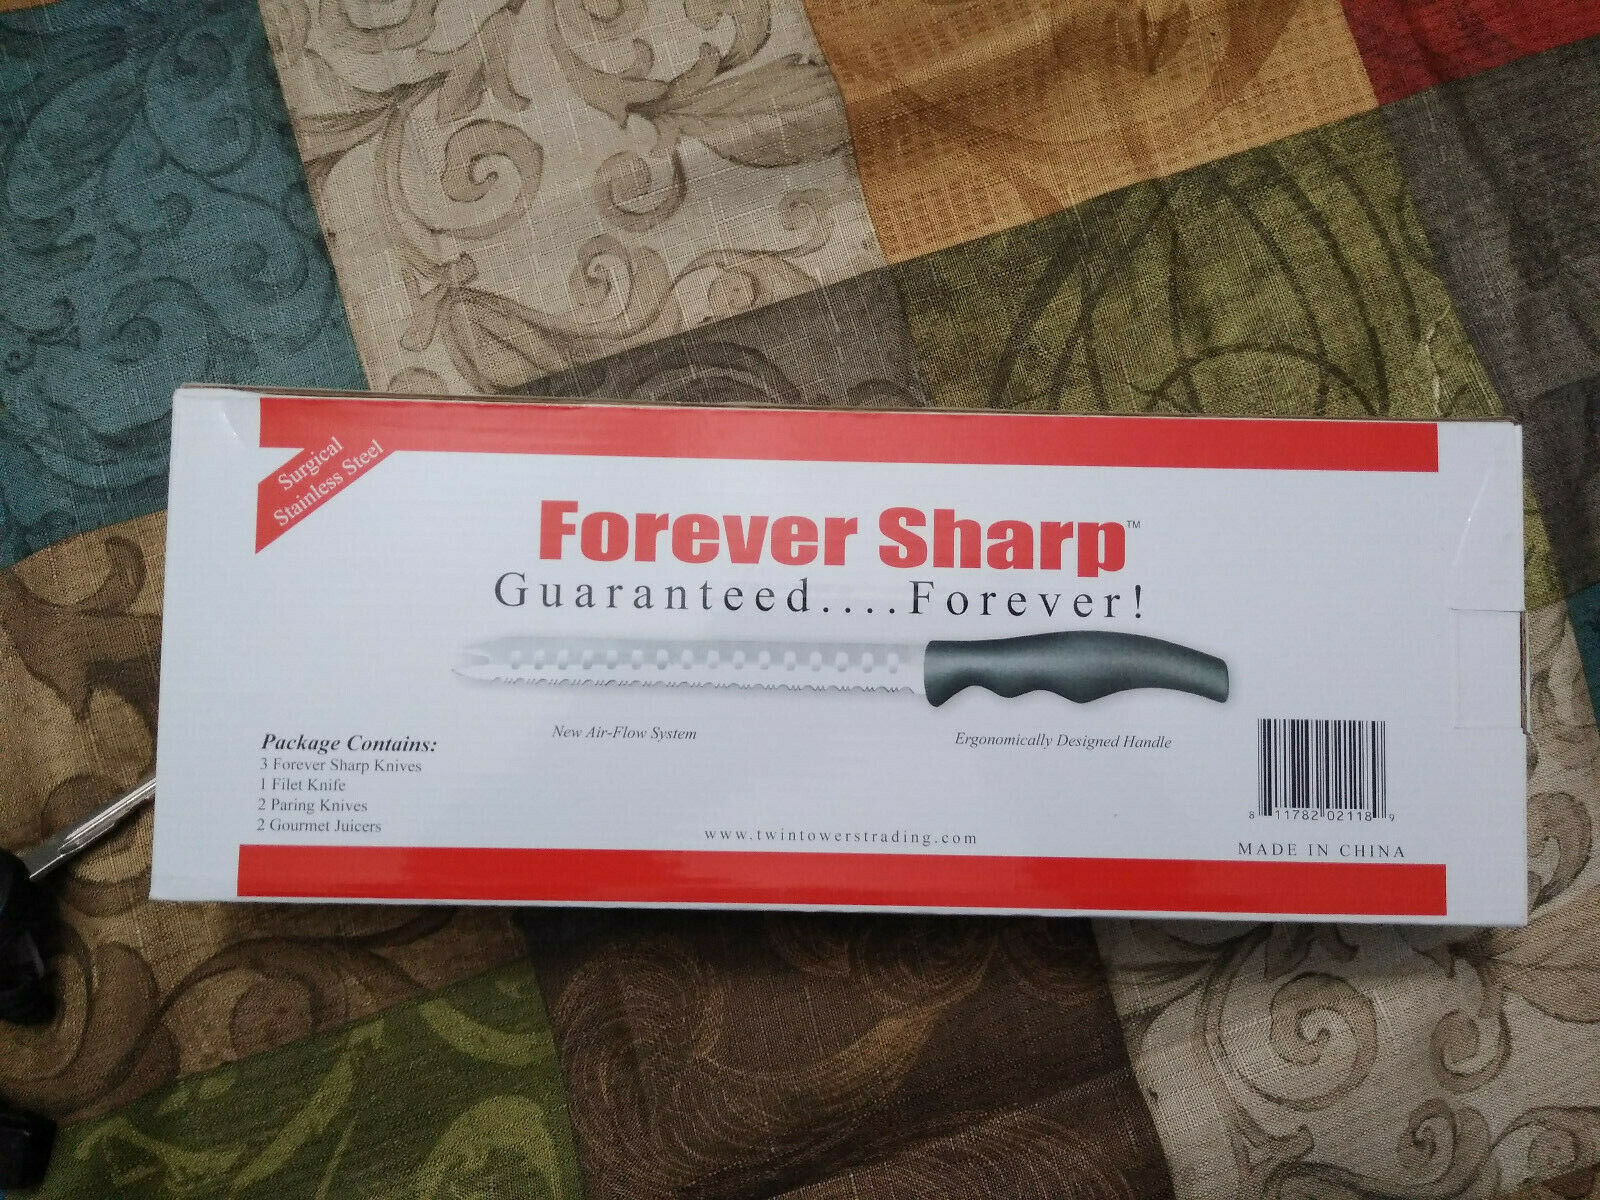 Forever sharp knives classic series knife set with juicers 8 piece set new for sale online